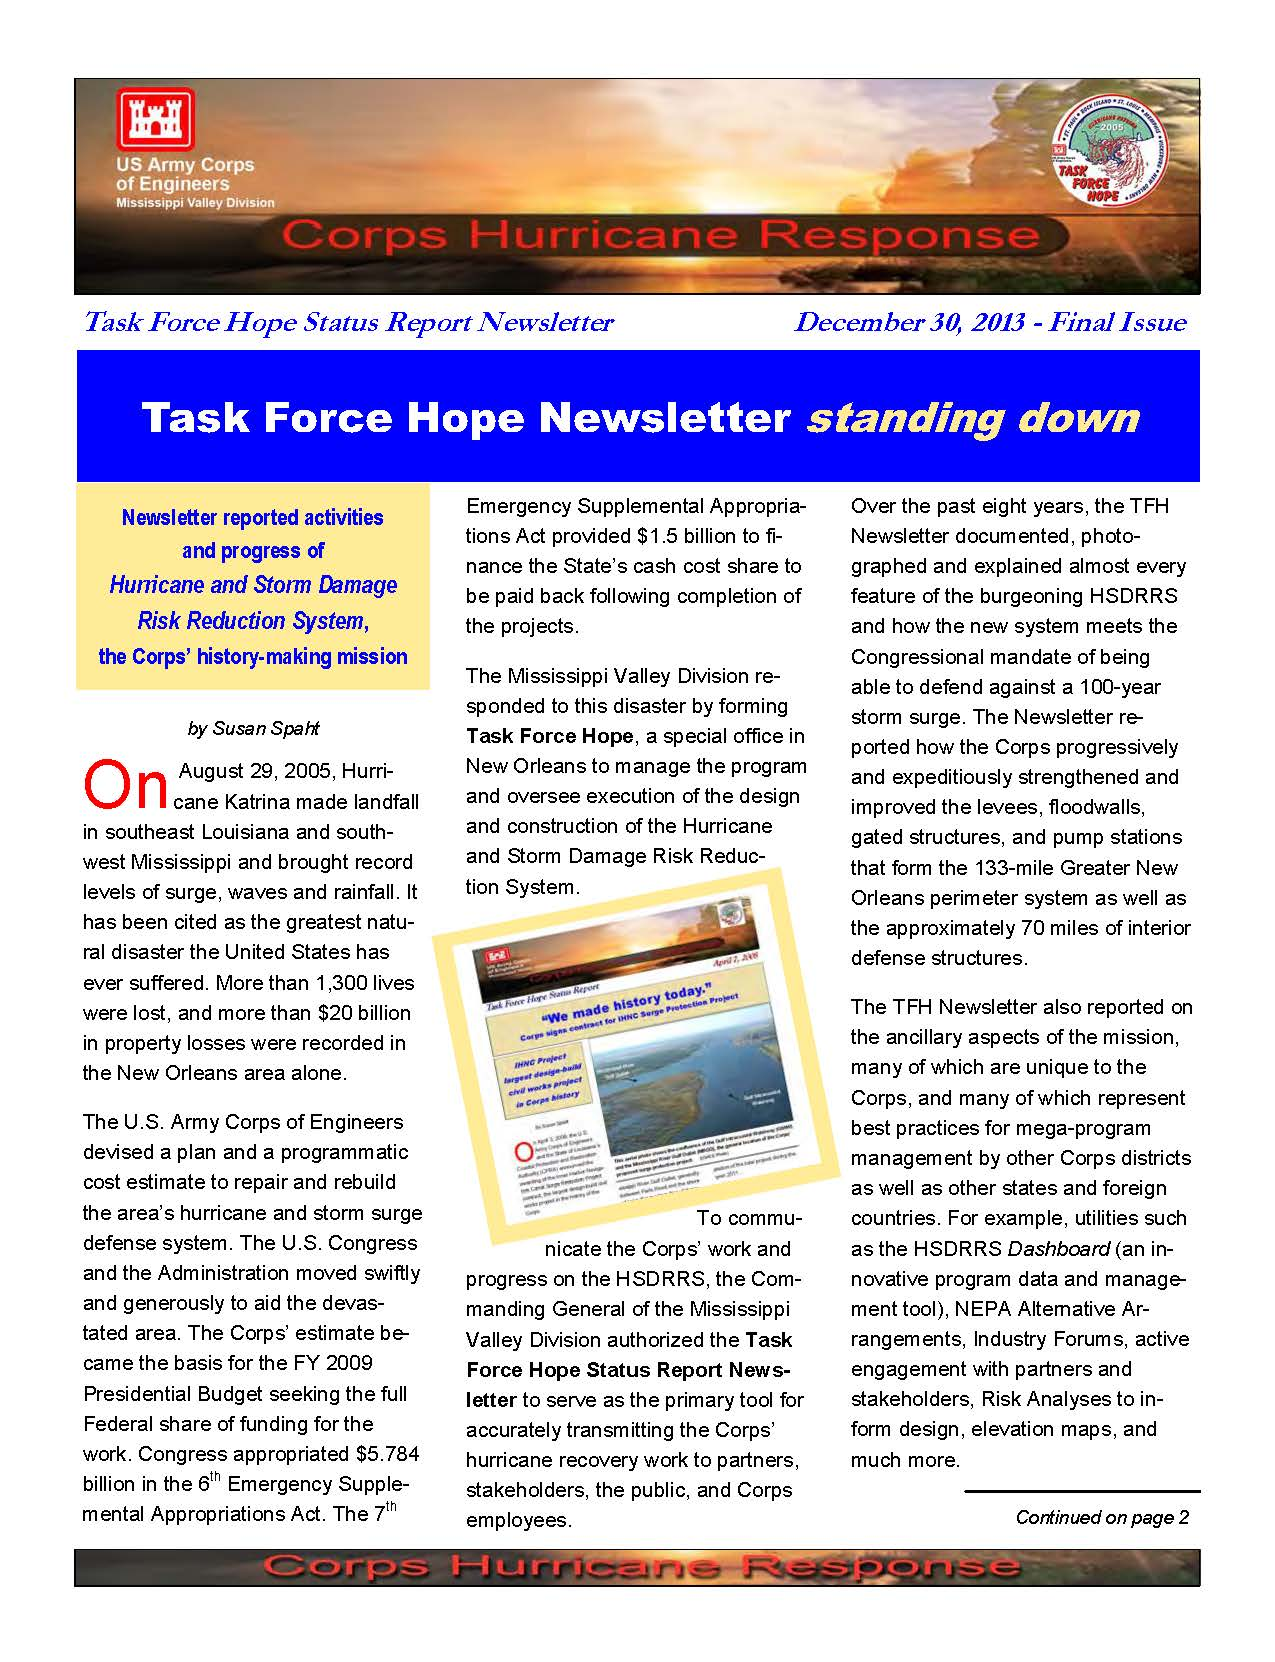 Current and final issue of Task Force Hope newsletter